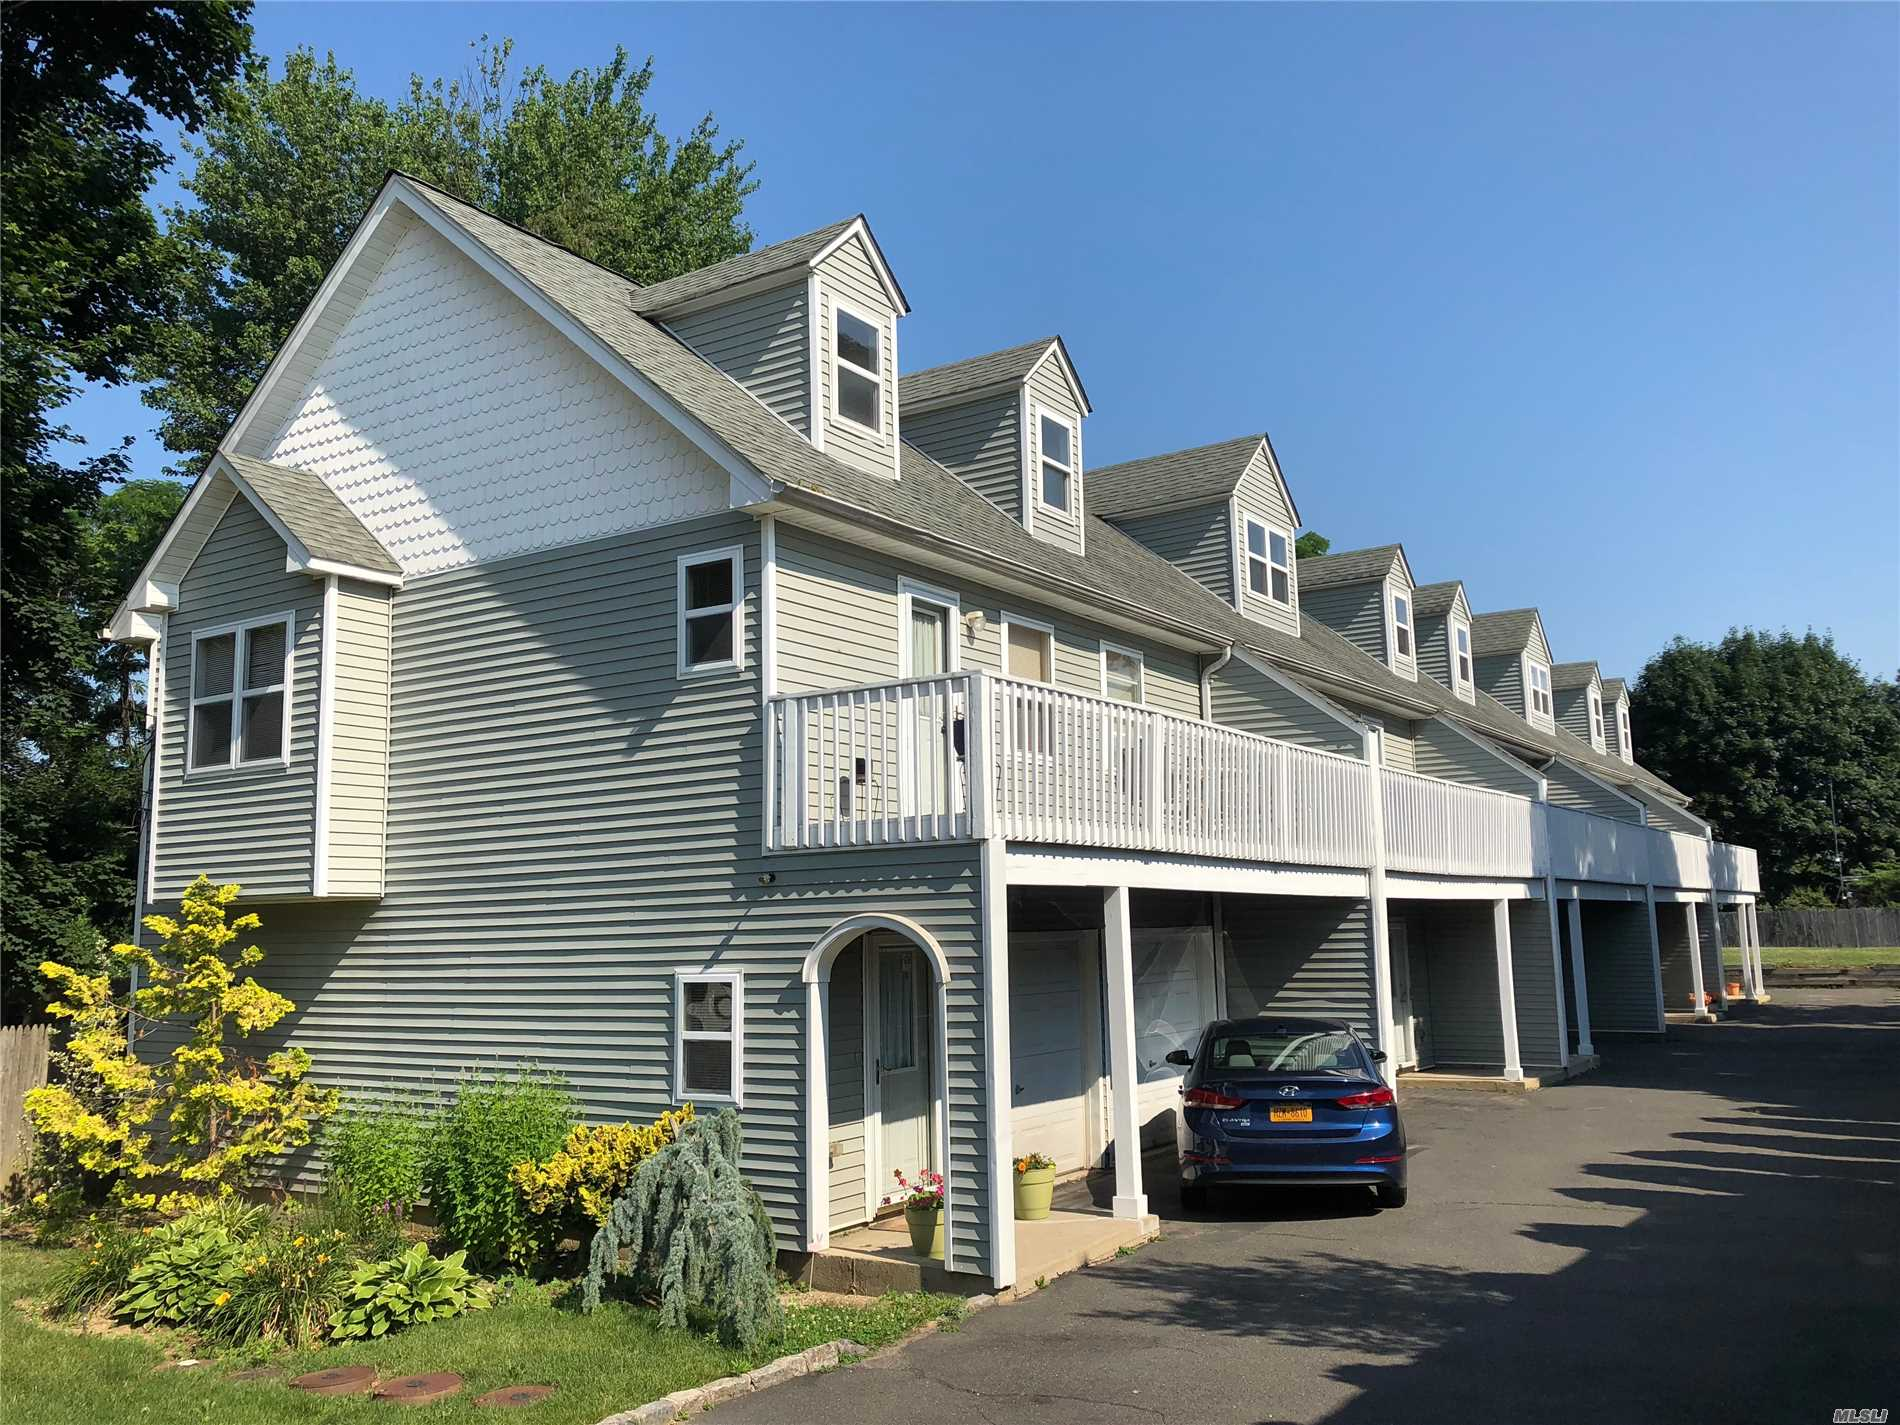 Great Townhouse, All Updated. Lrm/Da With Cathedral Ceilings, Eik, 1 Brm, Bath, Loft, Balcony, 2 Car Garage, Cac